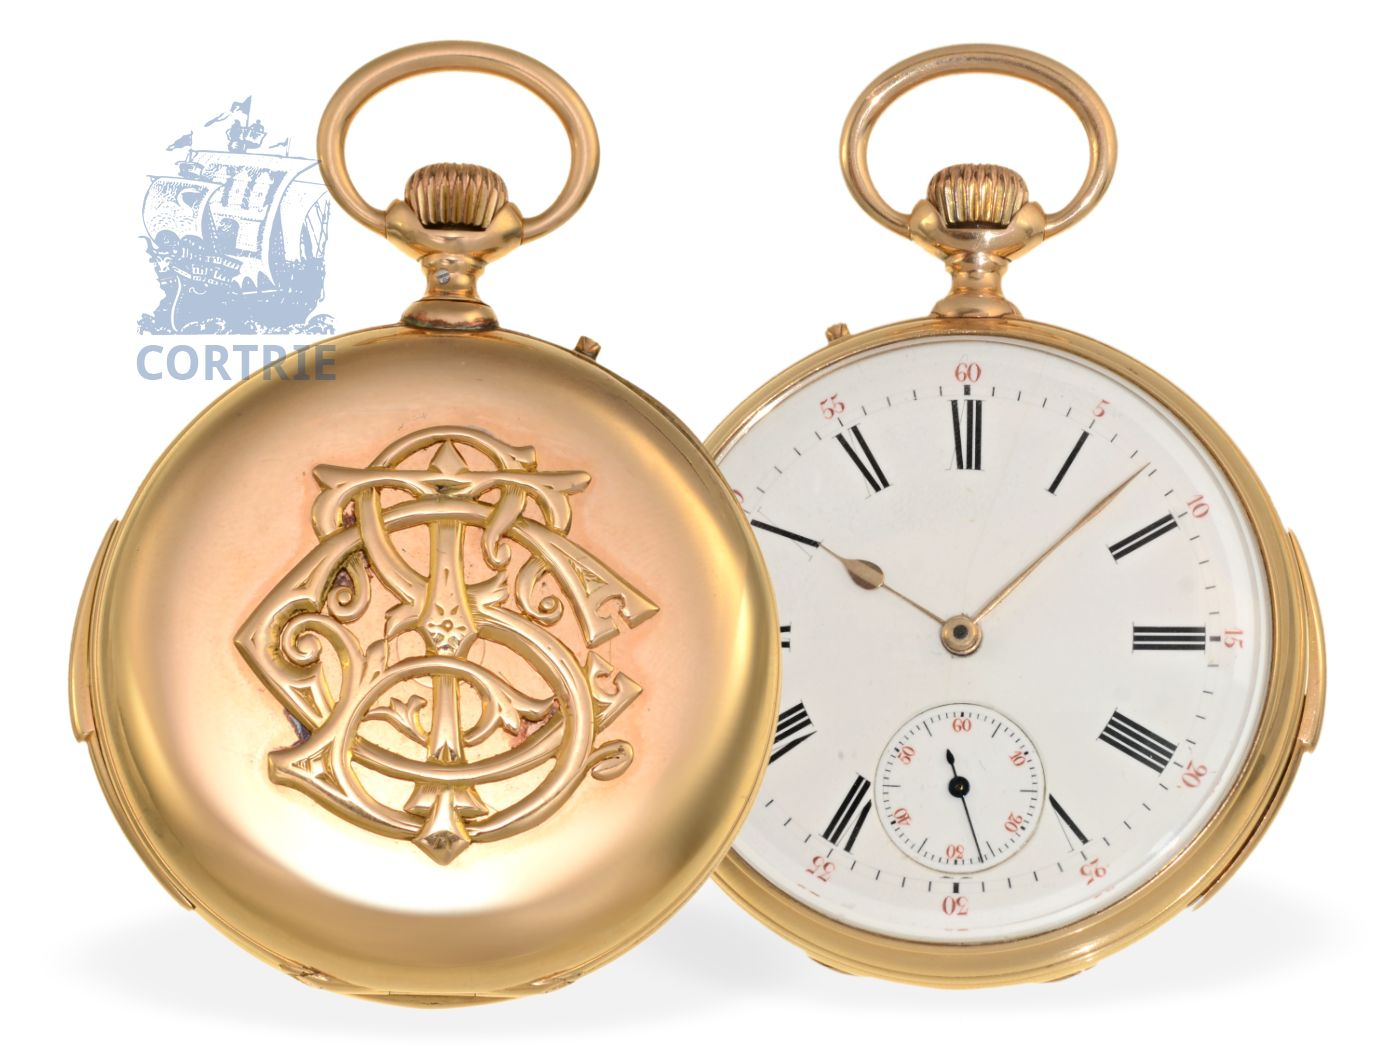 Pocket watch: very rare pocket watch minute repeater, very fine quality, signed signiert Czapek & Cie à Genève ca.1875, Napoleons servant of the court-